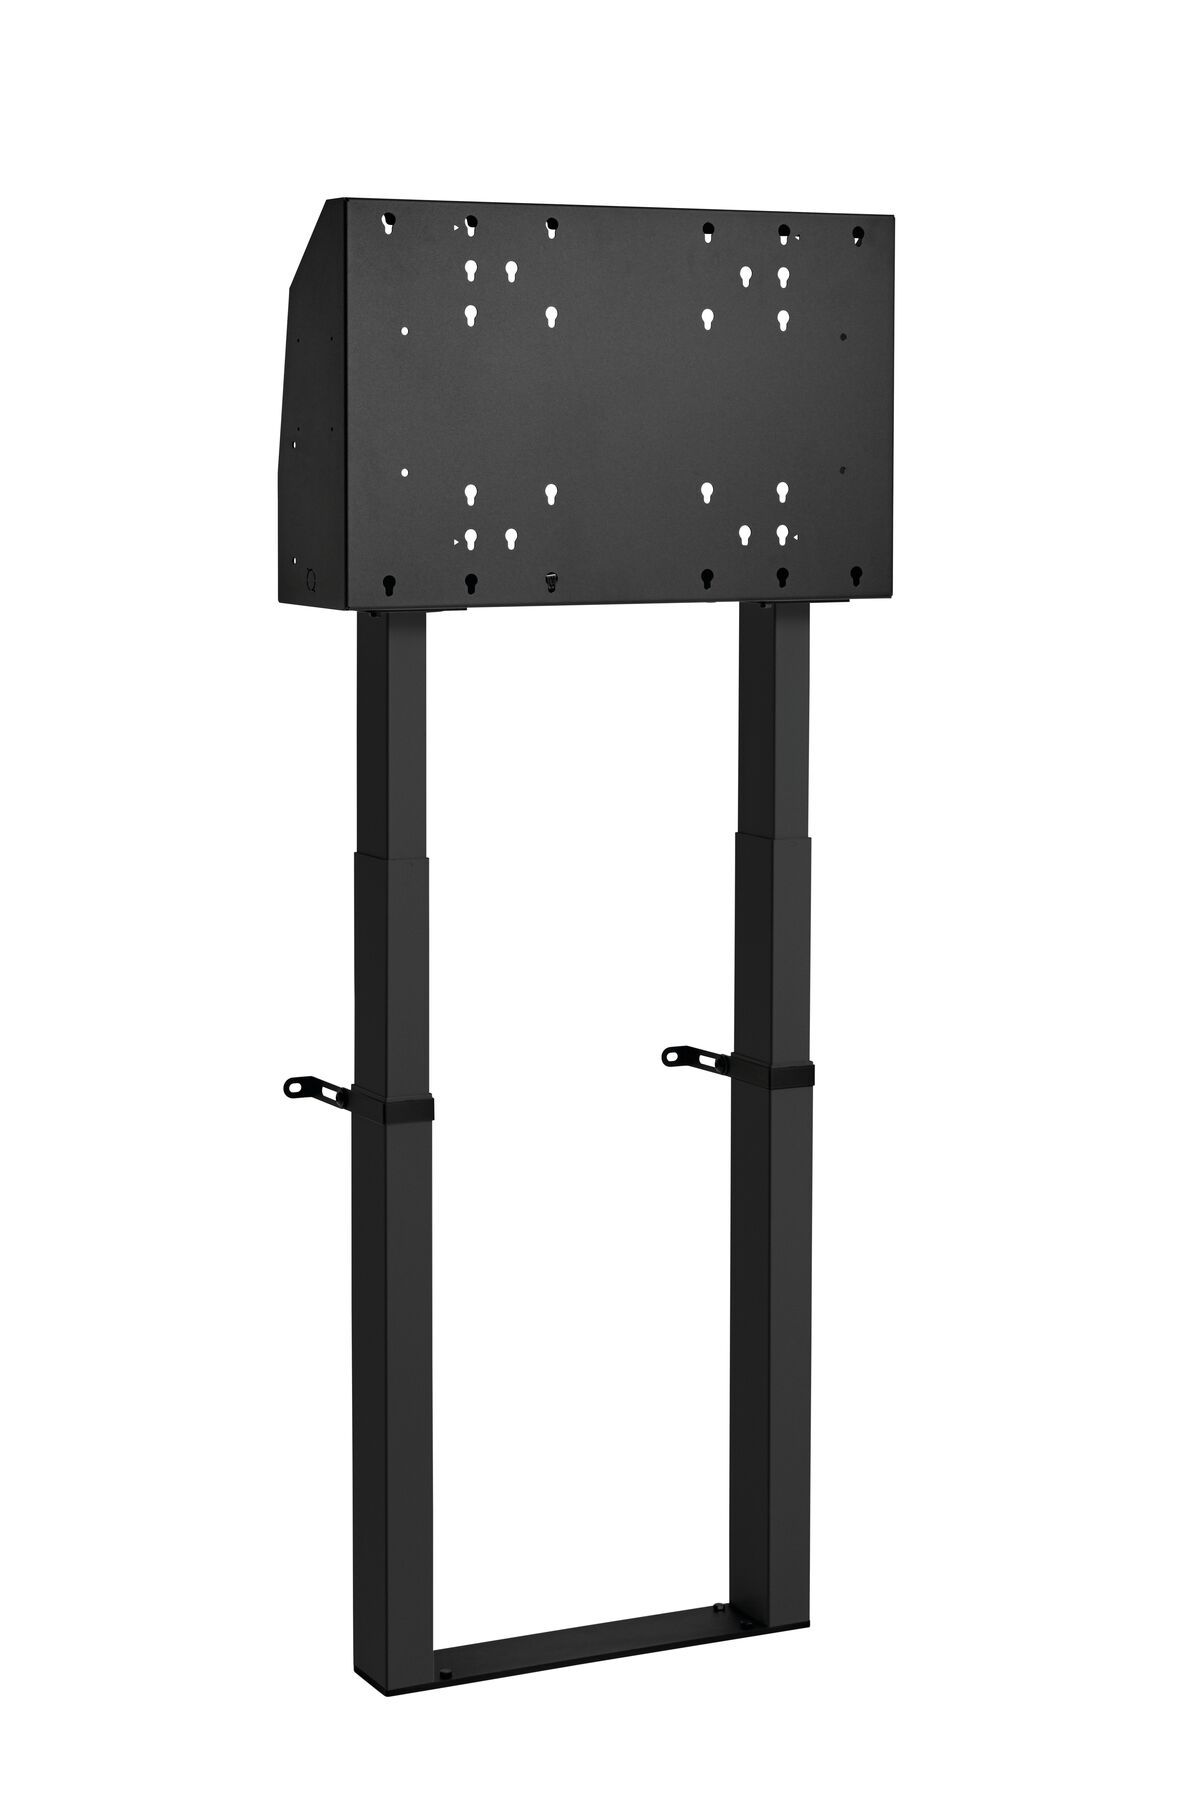 Vogel's FMDE9964 Motorized floor stand